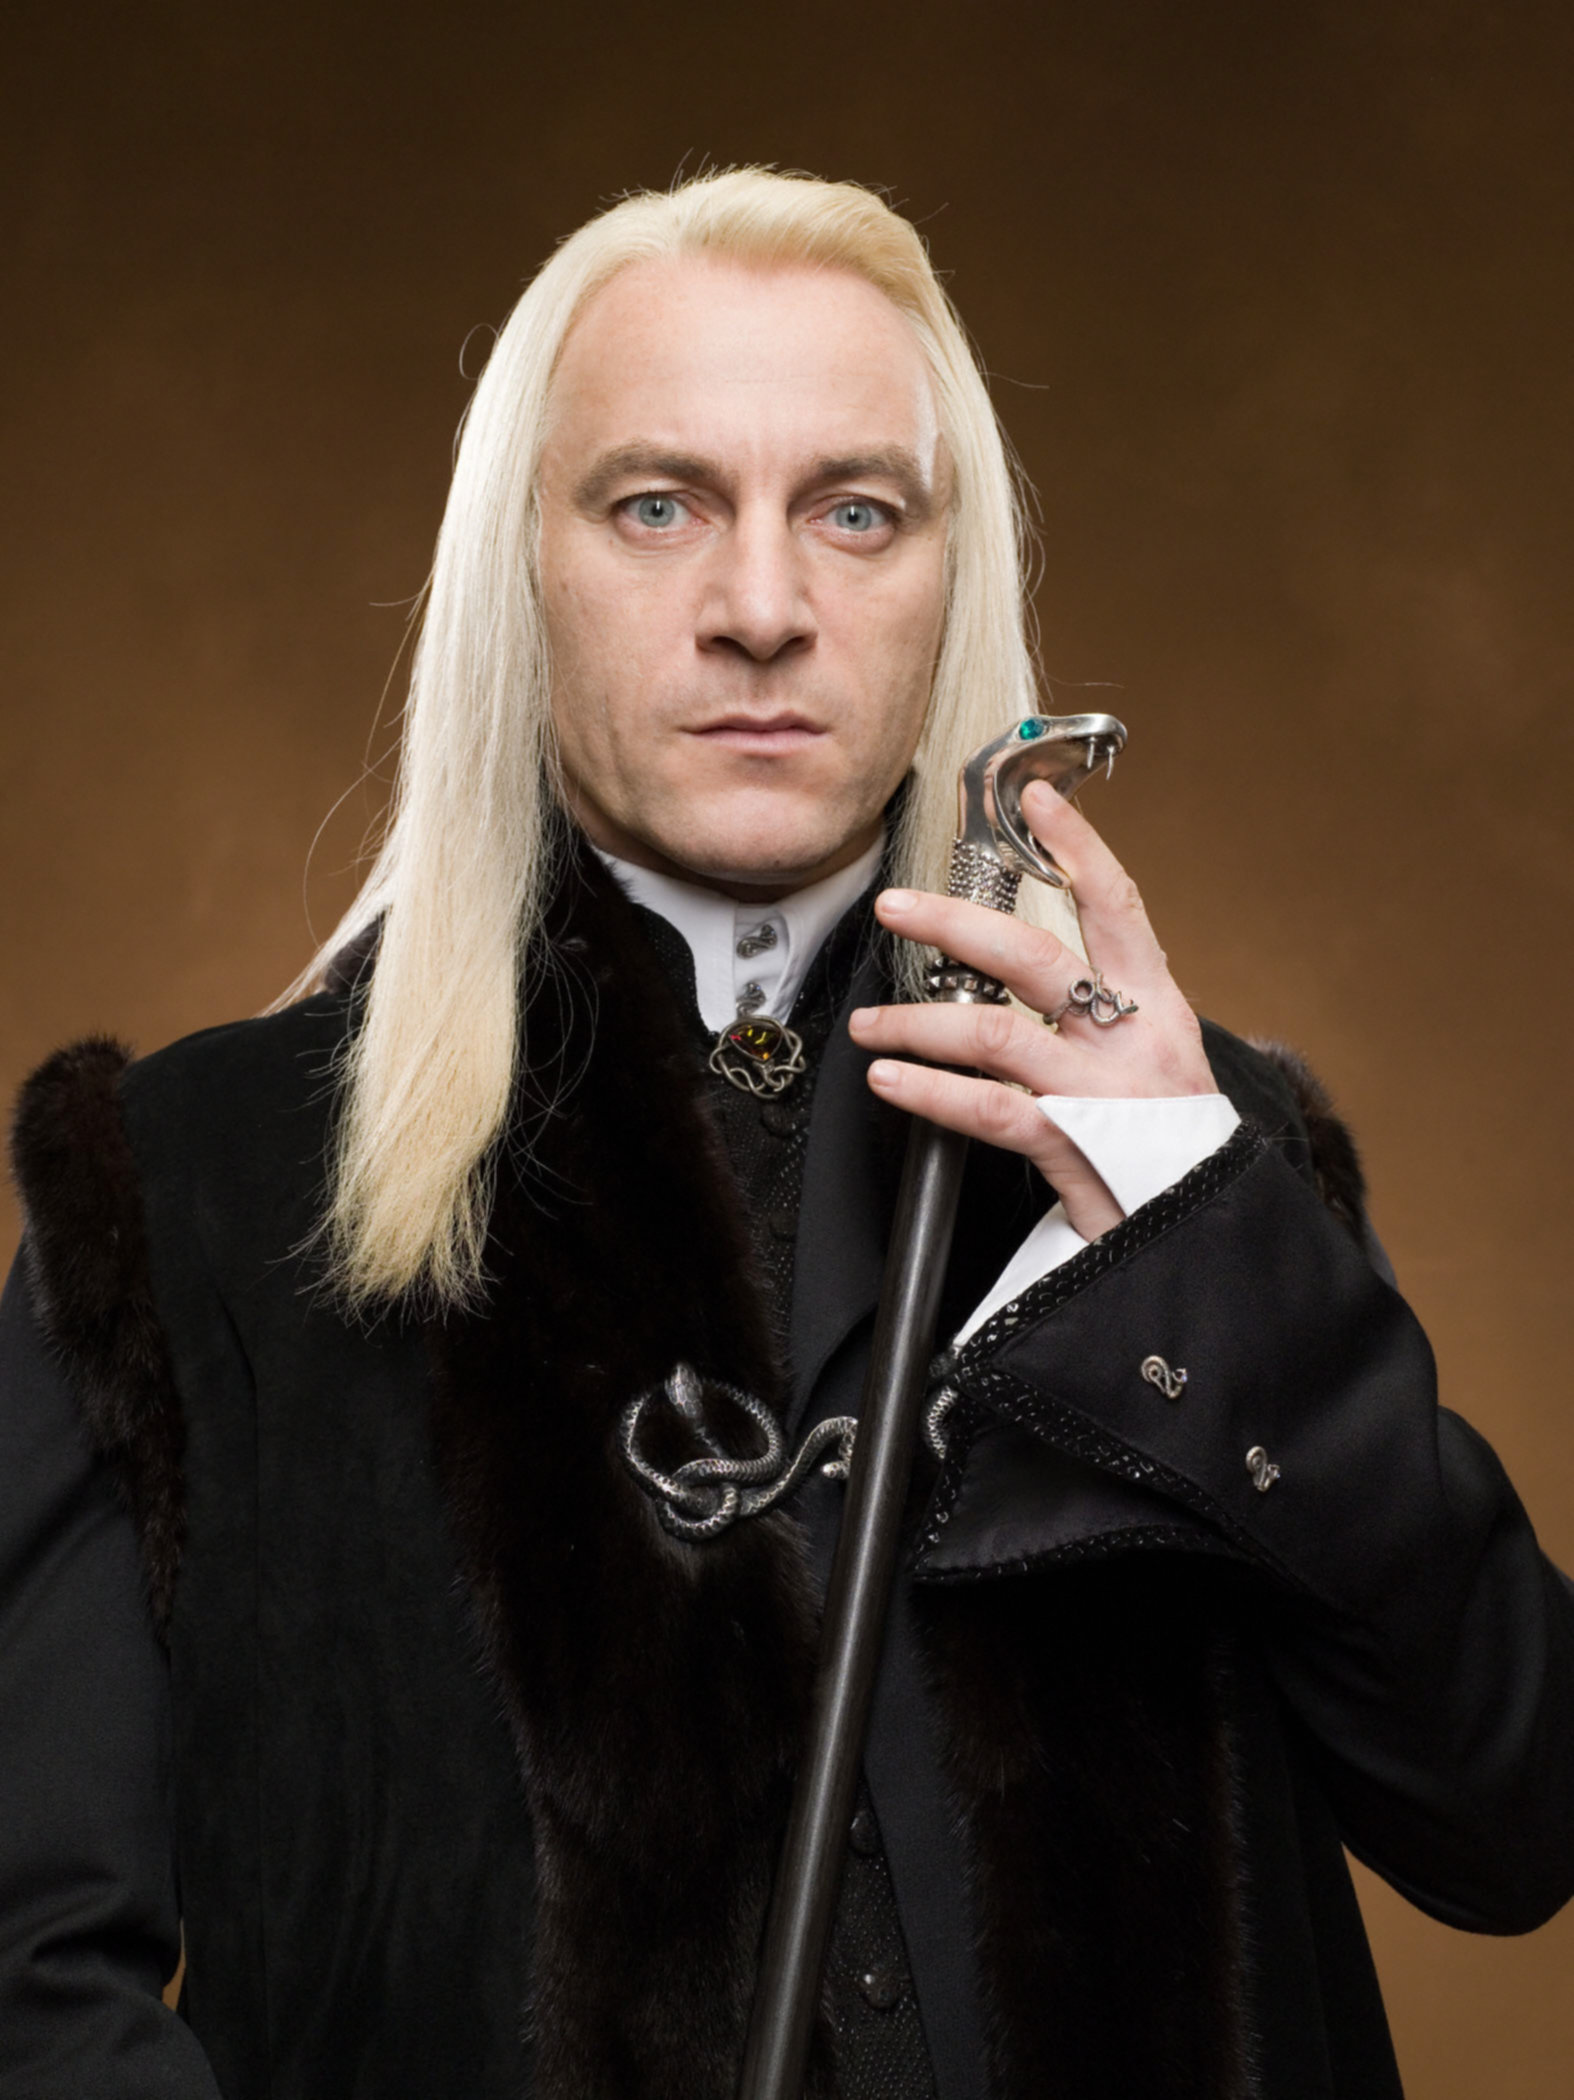 Lucius looks intimidating holding his cane from the Chamber of Secrets